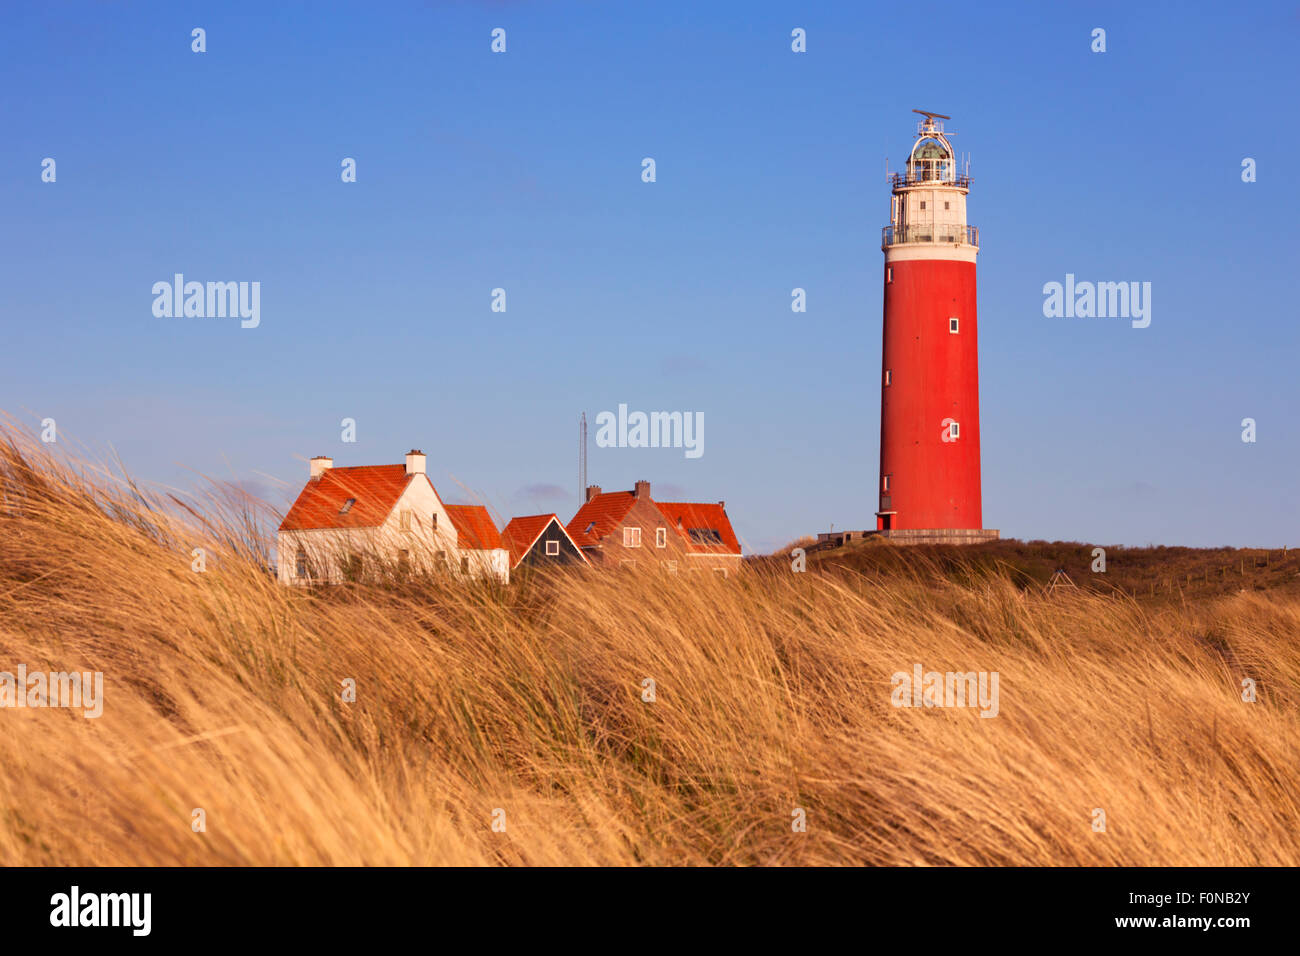 The lighthouse of the island of Texel in The Netherlands surrounded by tall dune grass in beautiful early morning - Stock Image